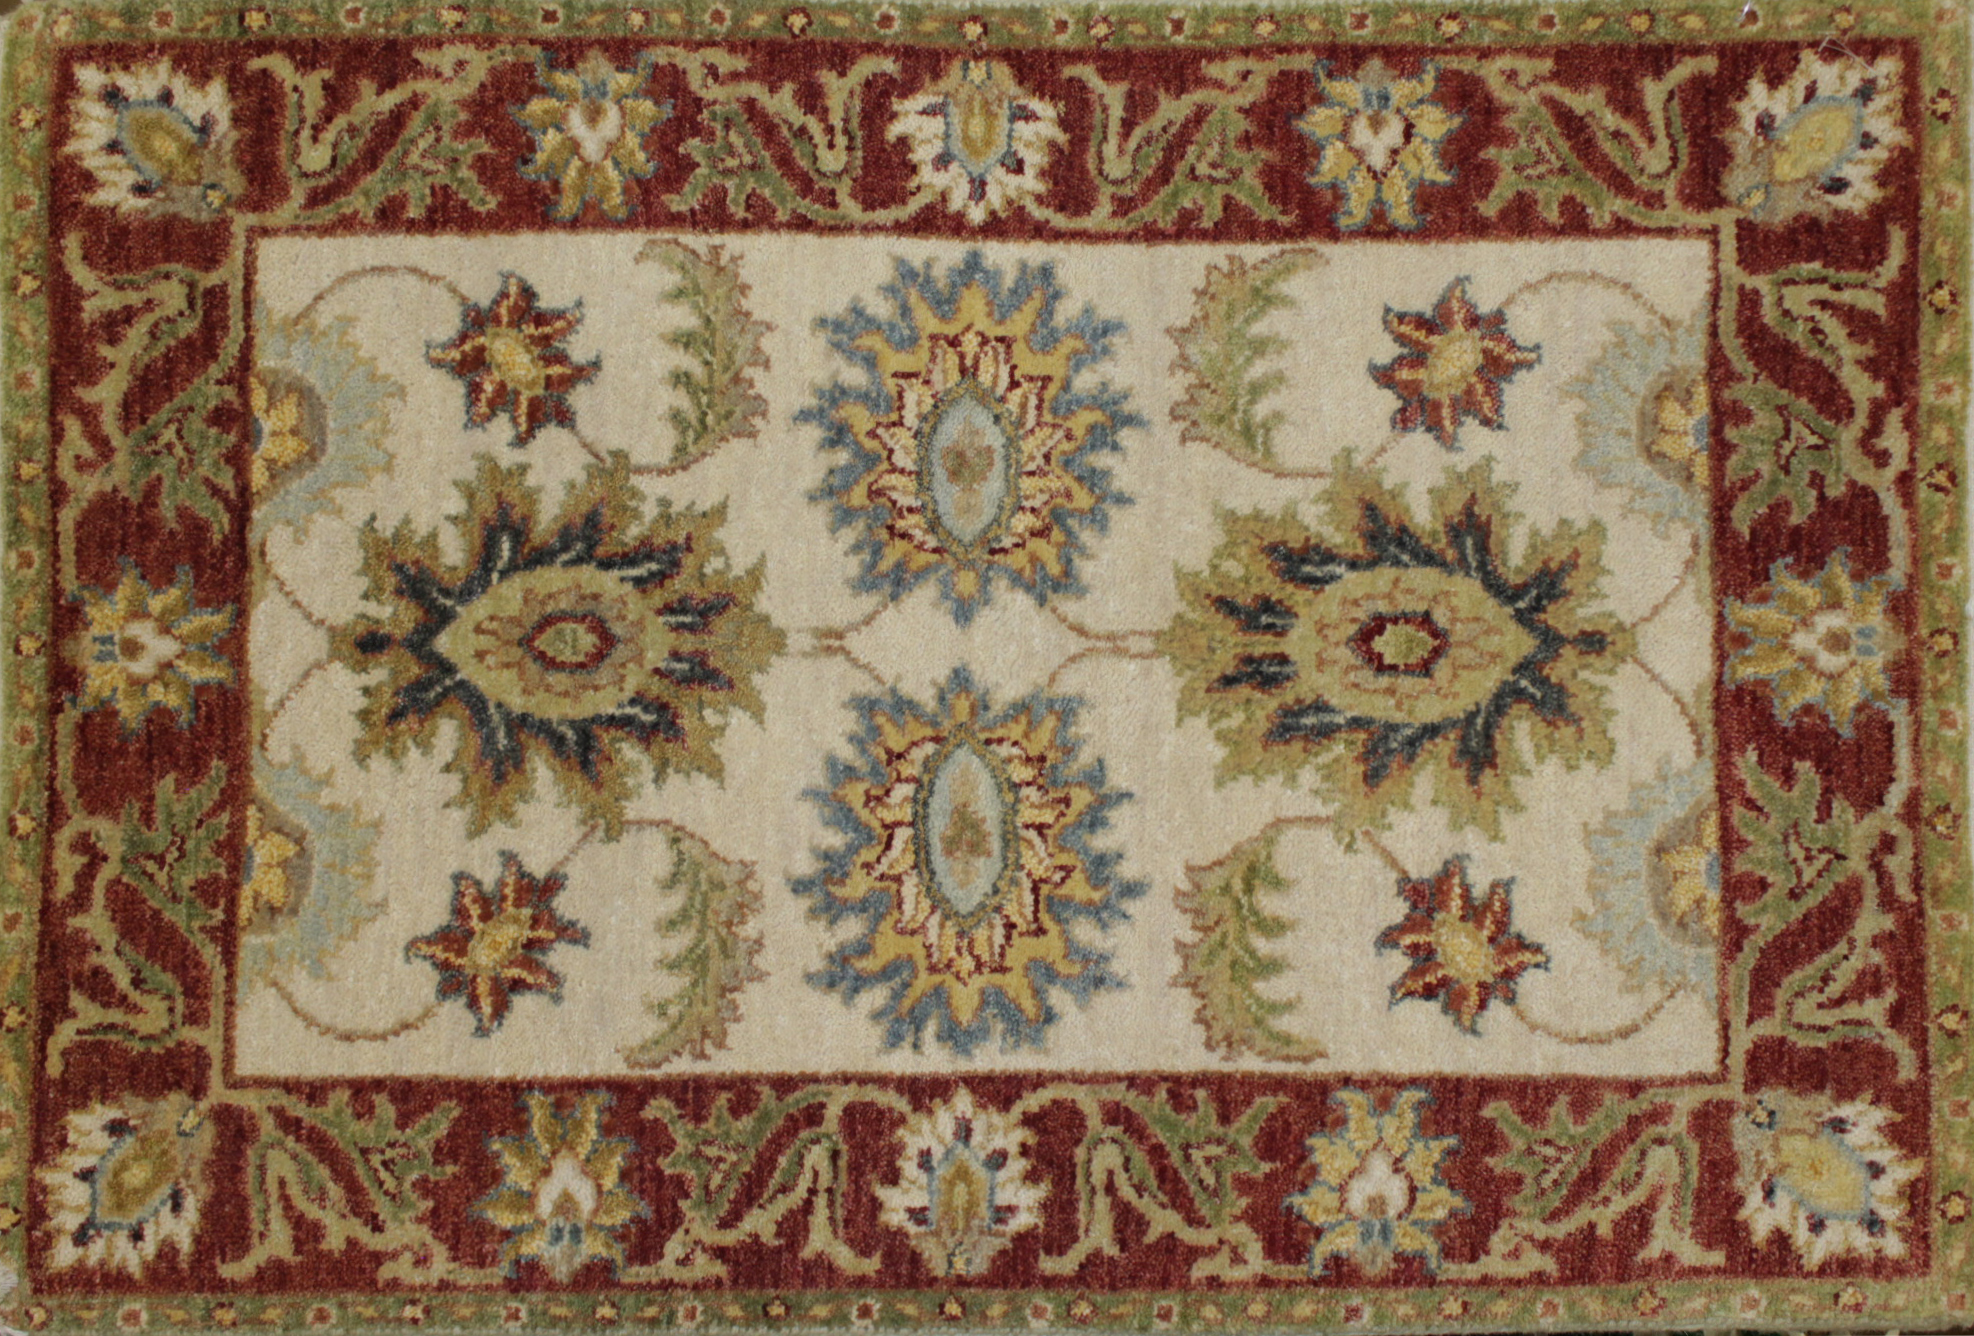 2X3 Traditional Hand Knotted Wool Area Rug - MR022077